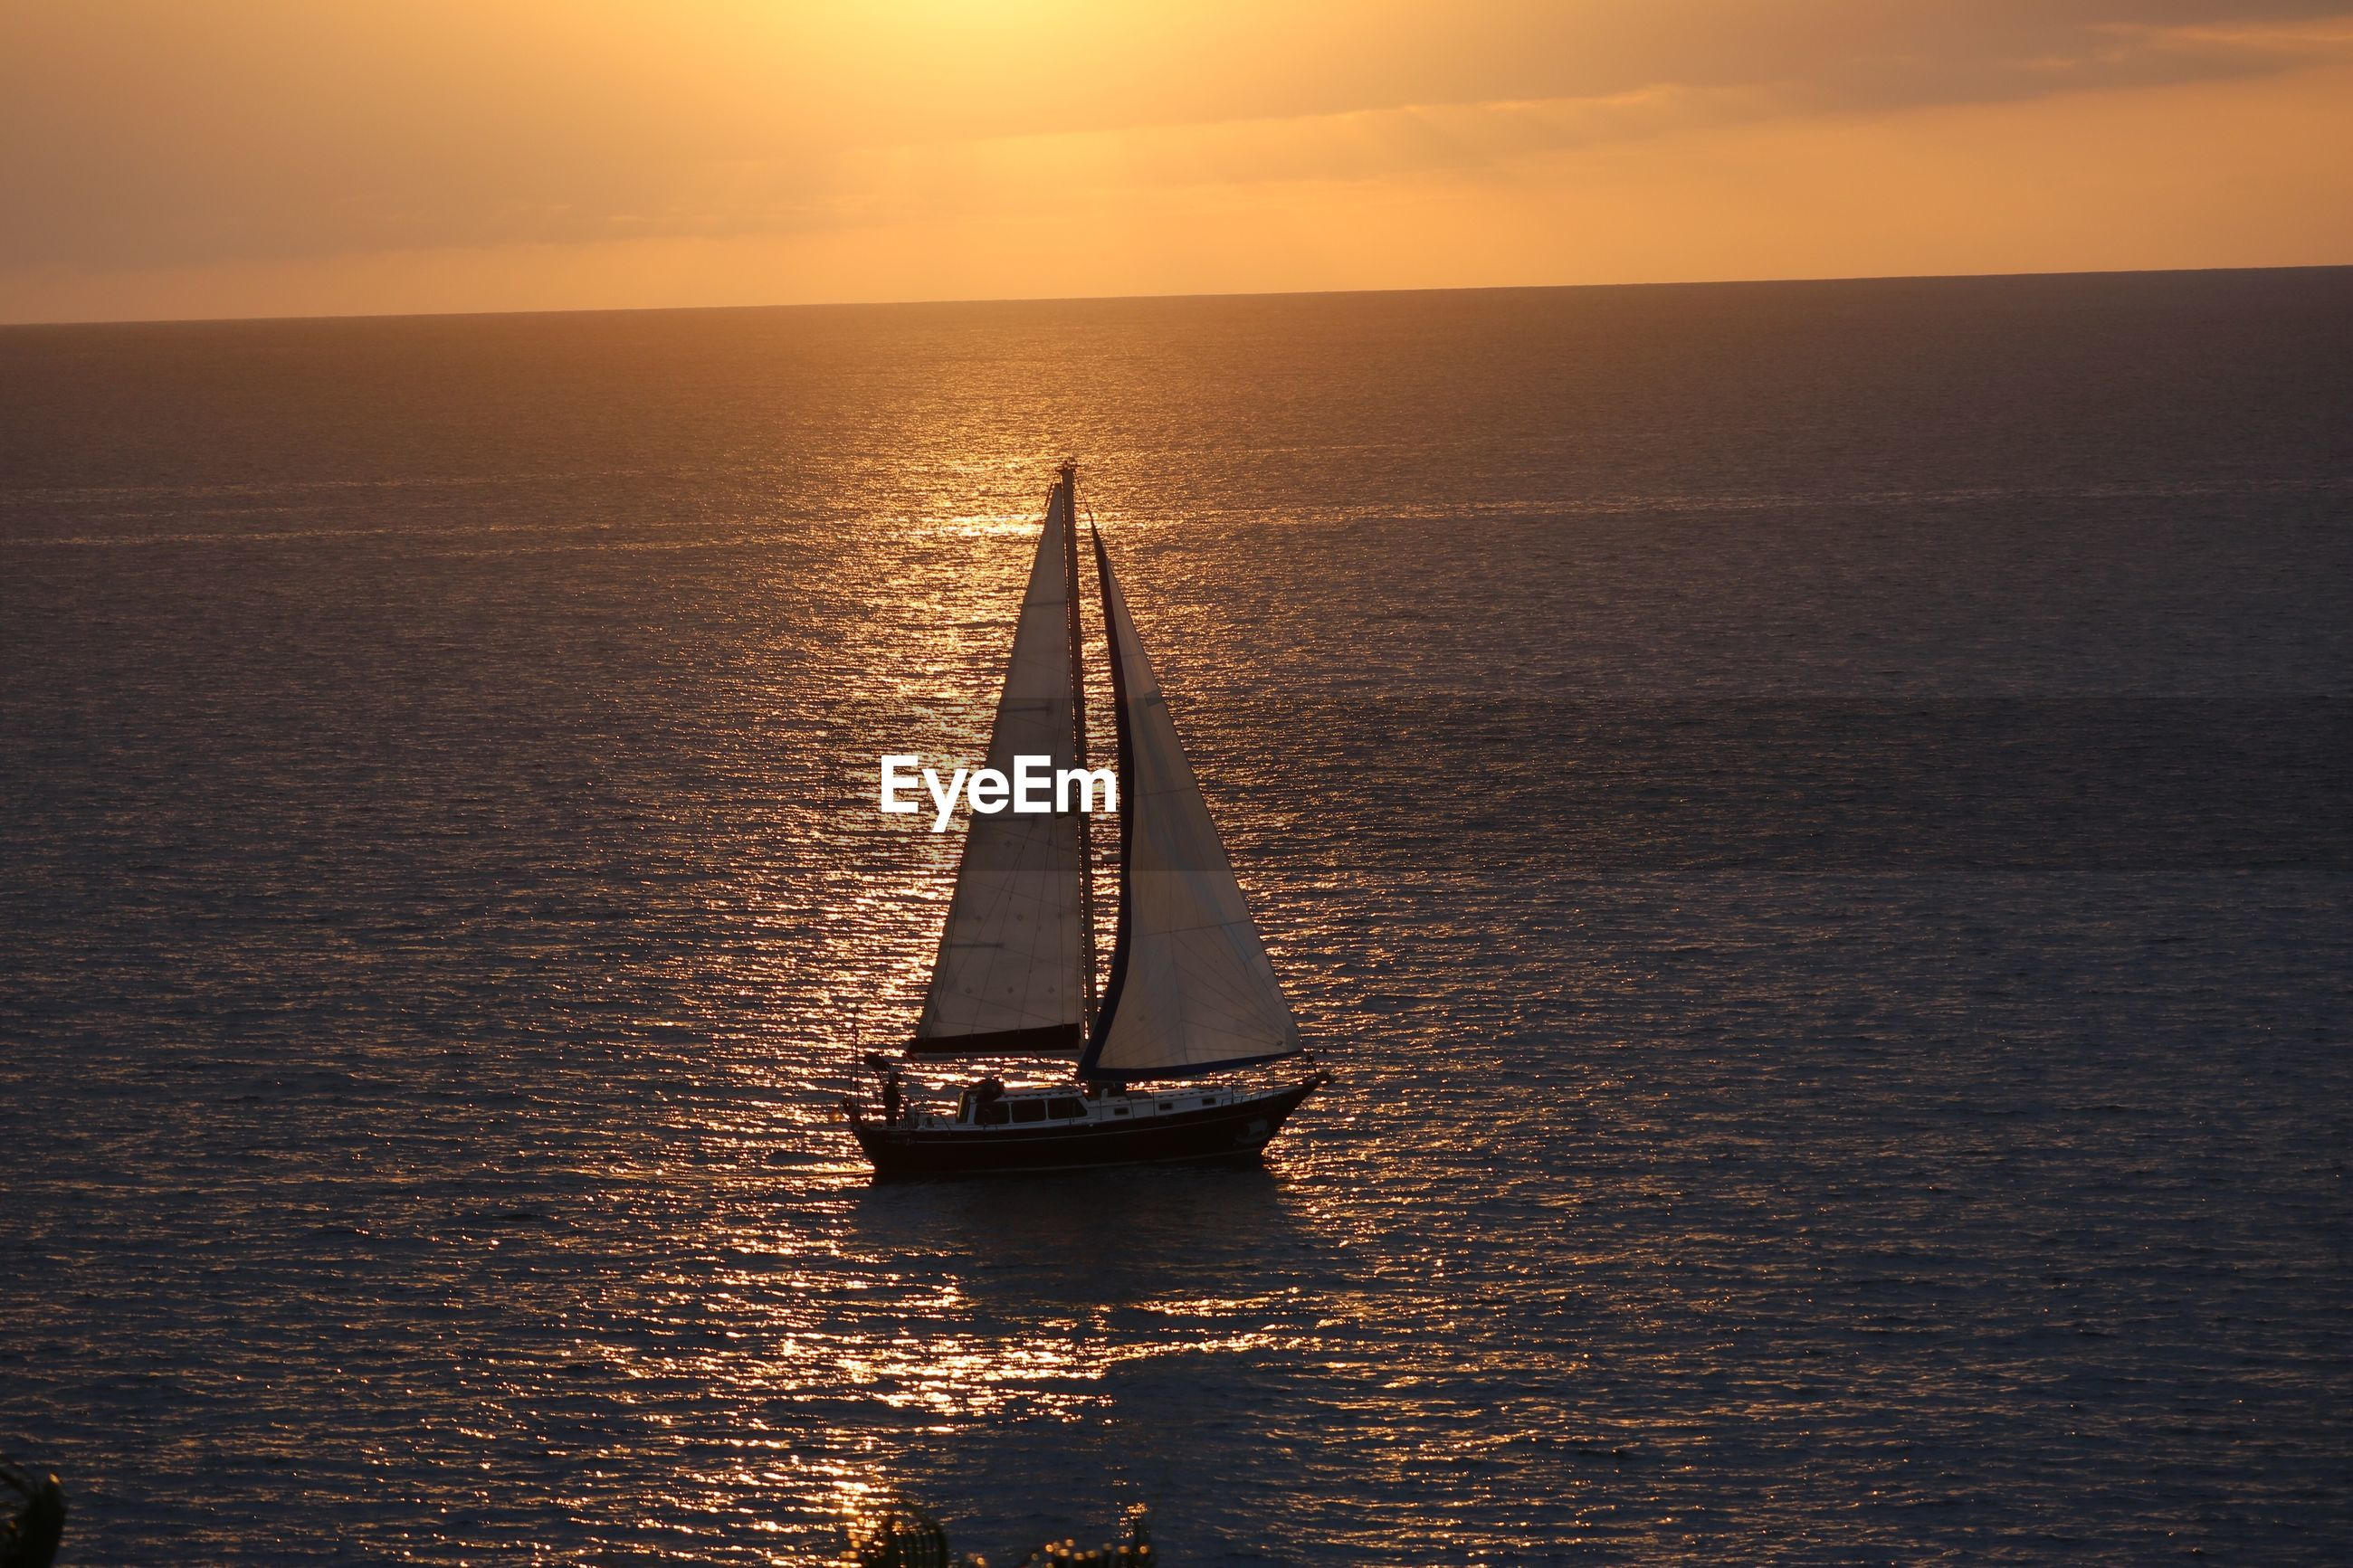 Sailboat moving in sea against sky during sunset